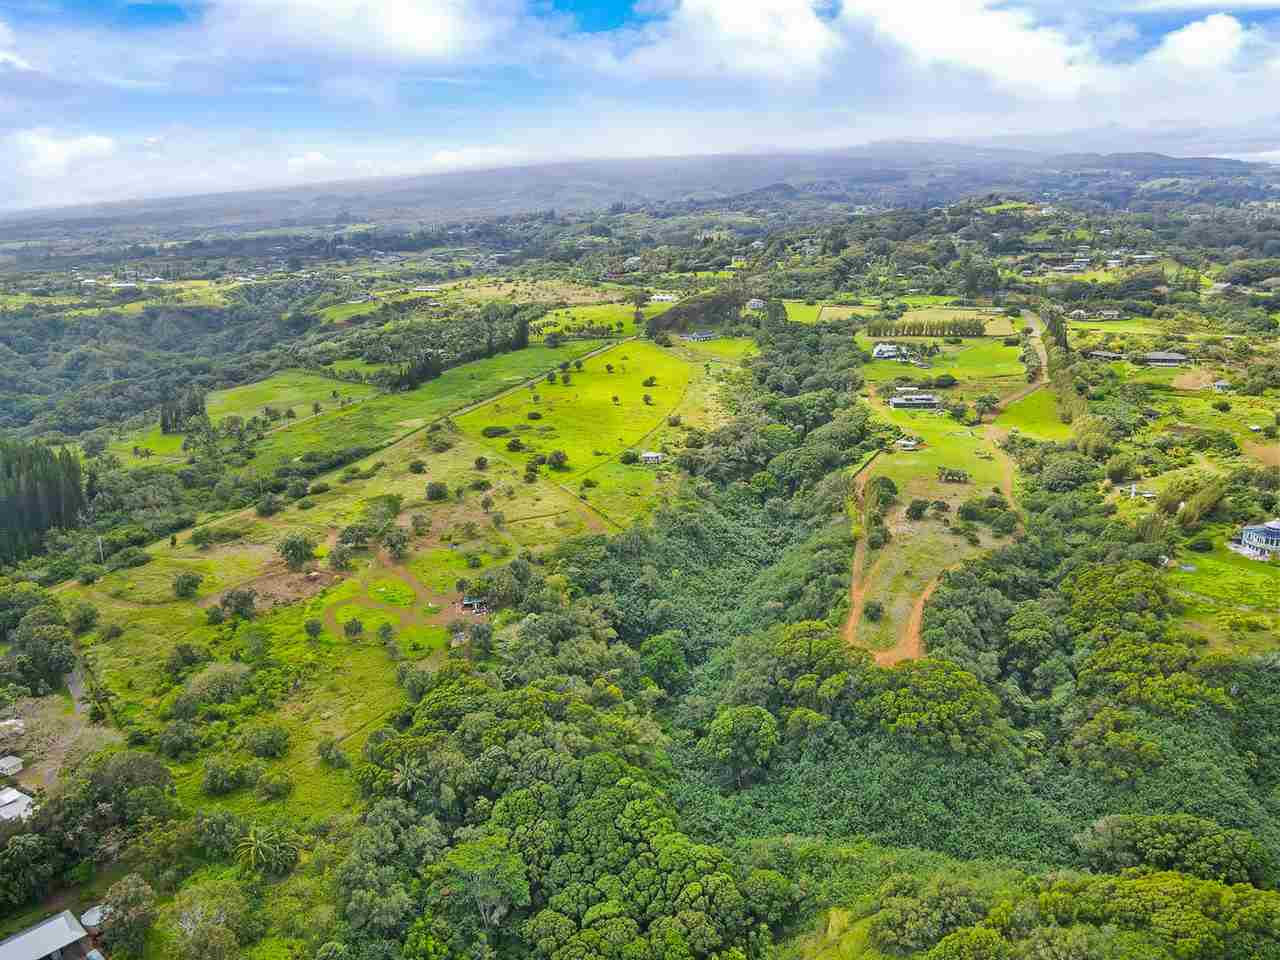 Manawai Pl Lot 3 Haiku, Hi 96708 vacant land - photo 15 of 19